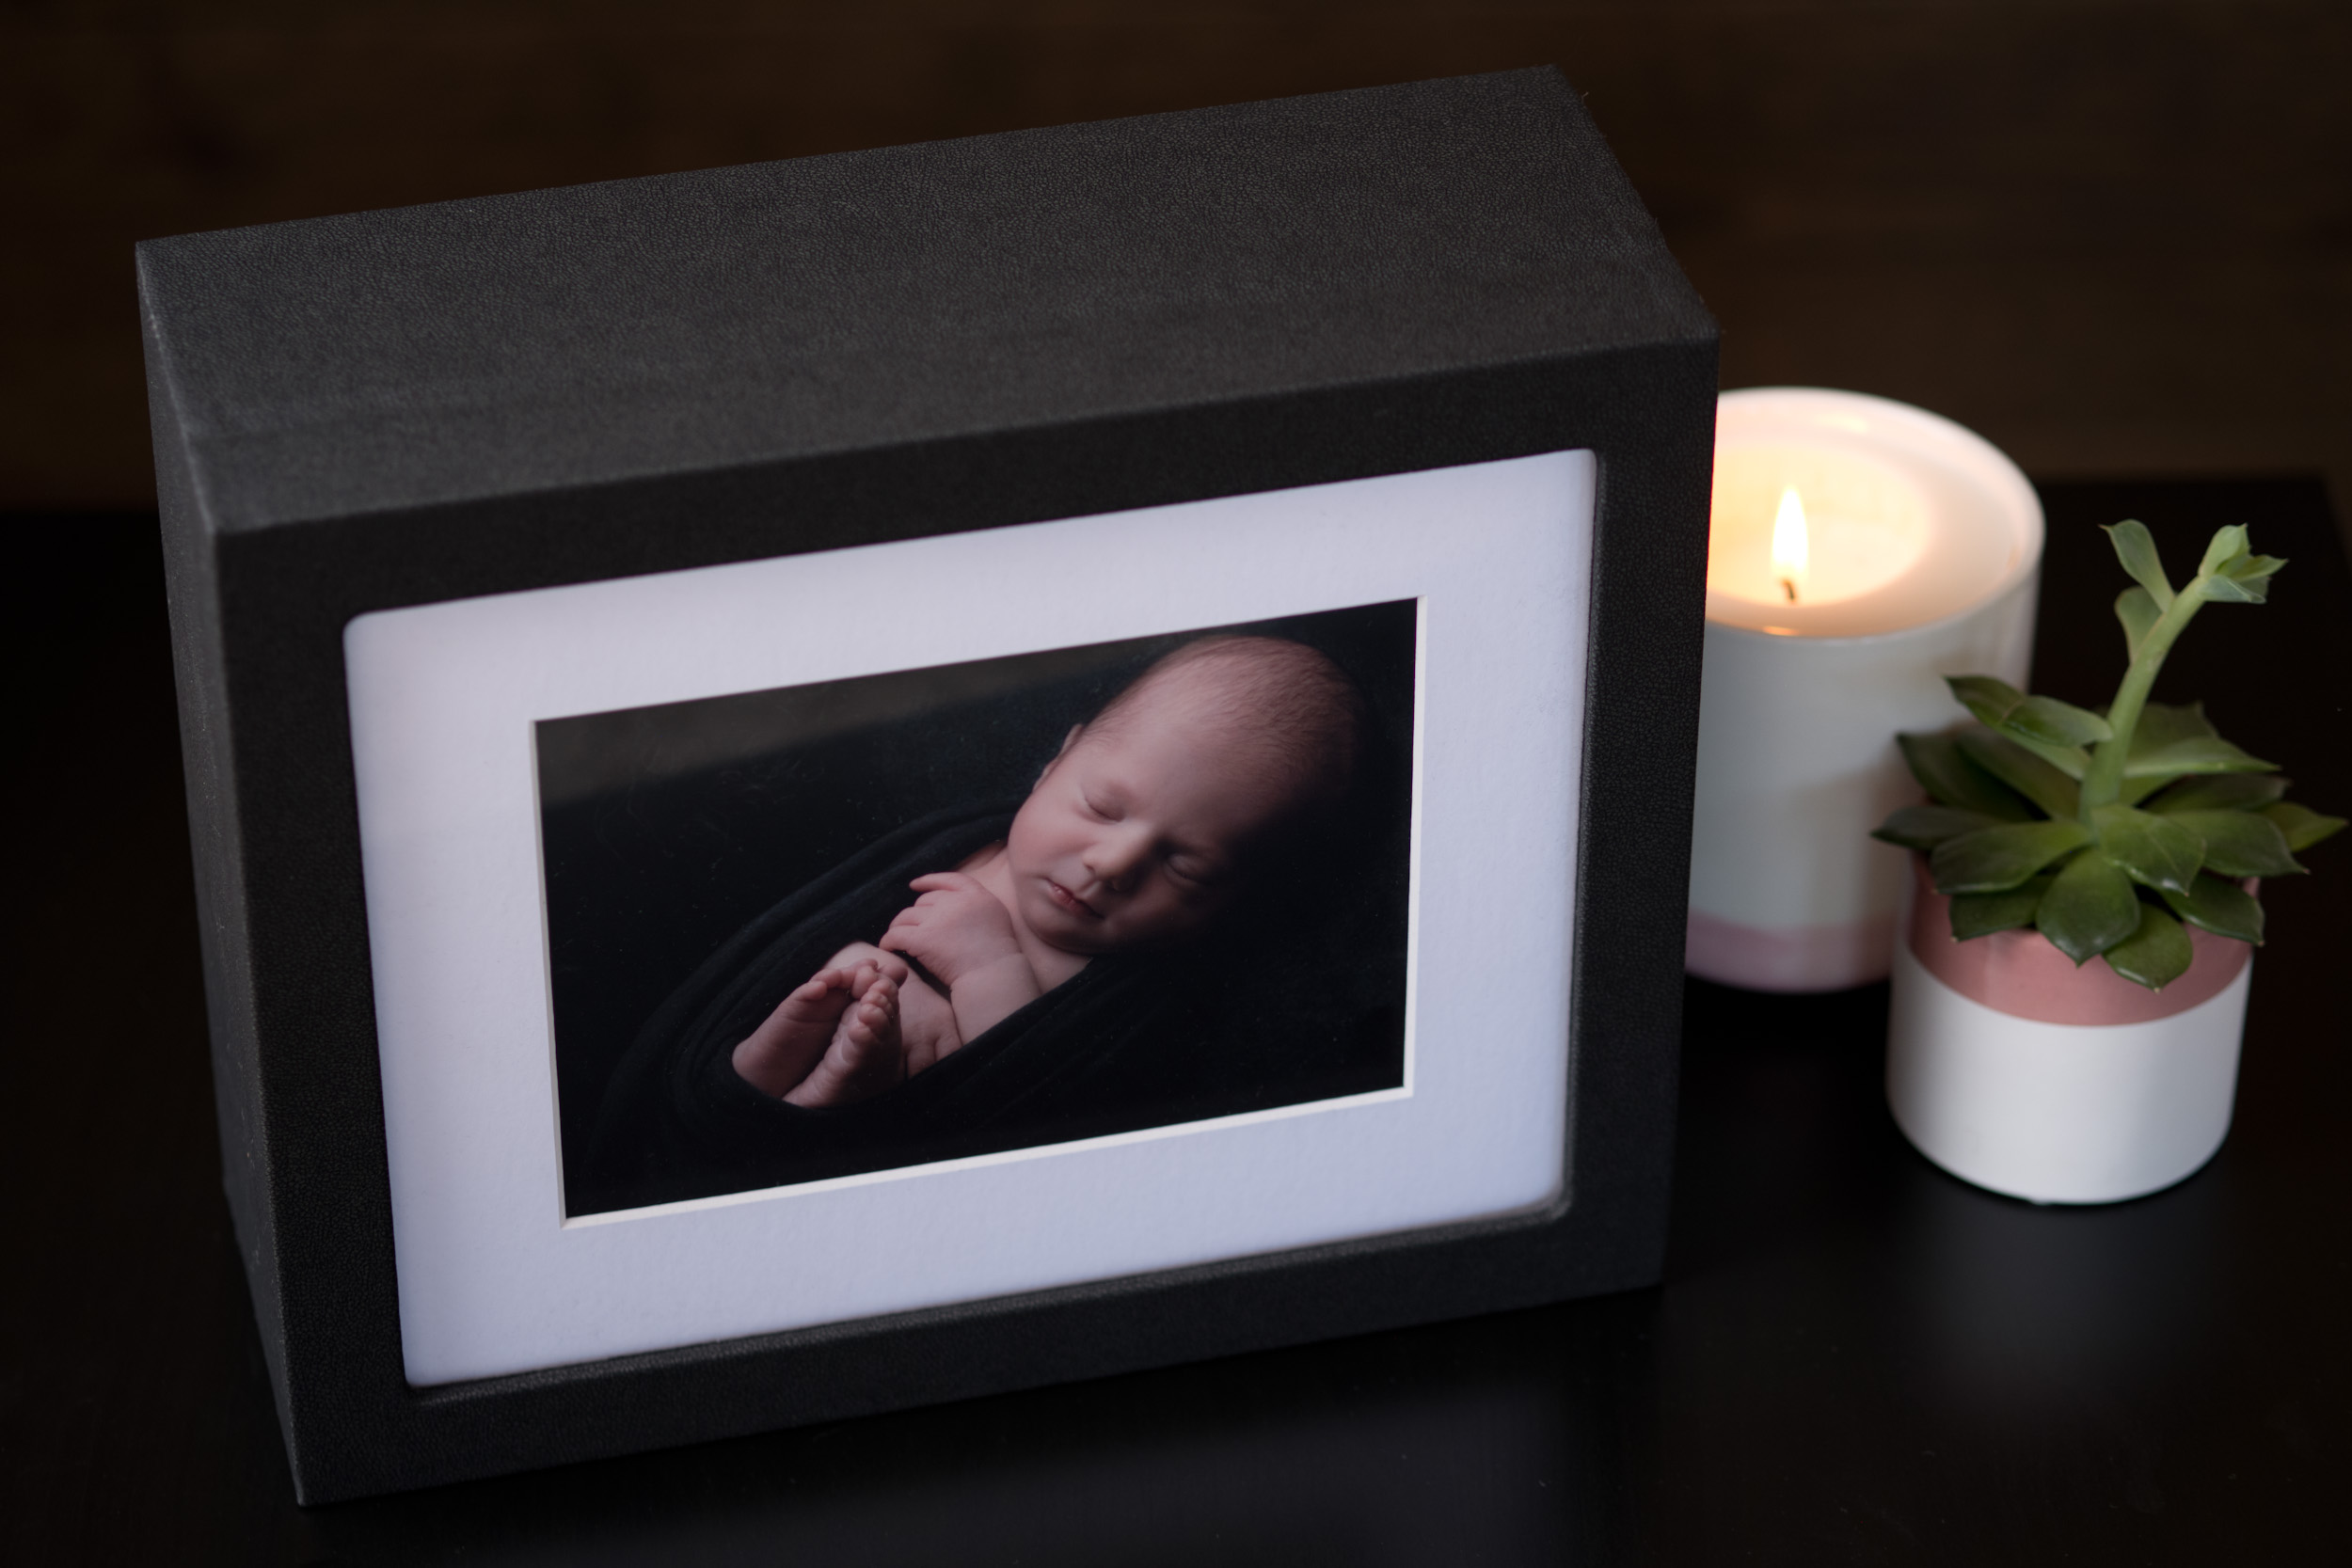 Newborn-Photography-Lincoln-Mounted-images-in-a-luxury-box-with-display-frame-005.jpg